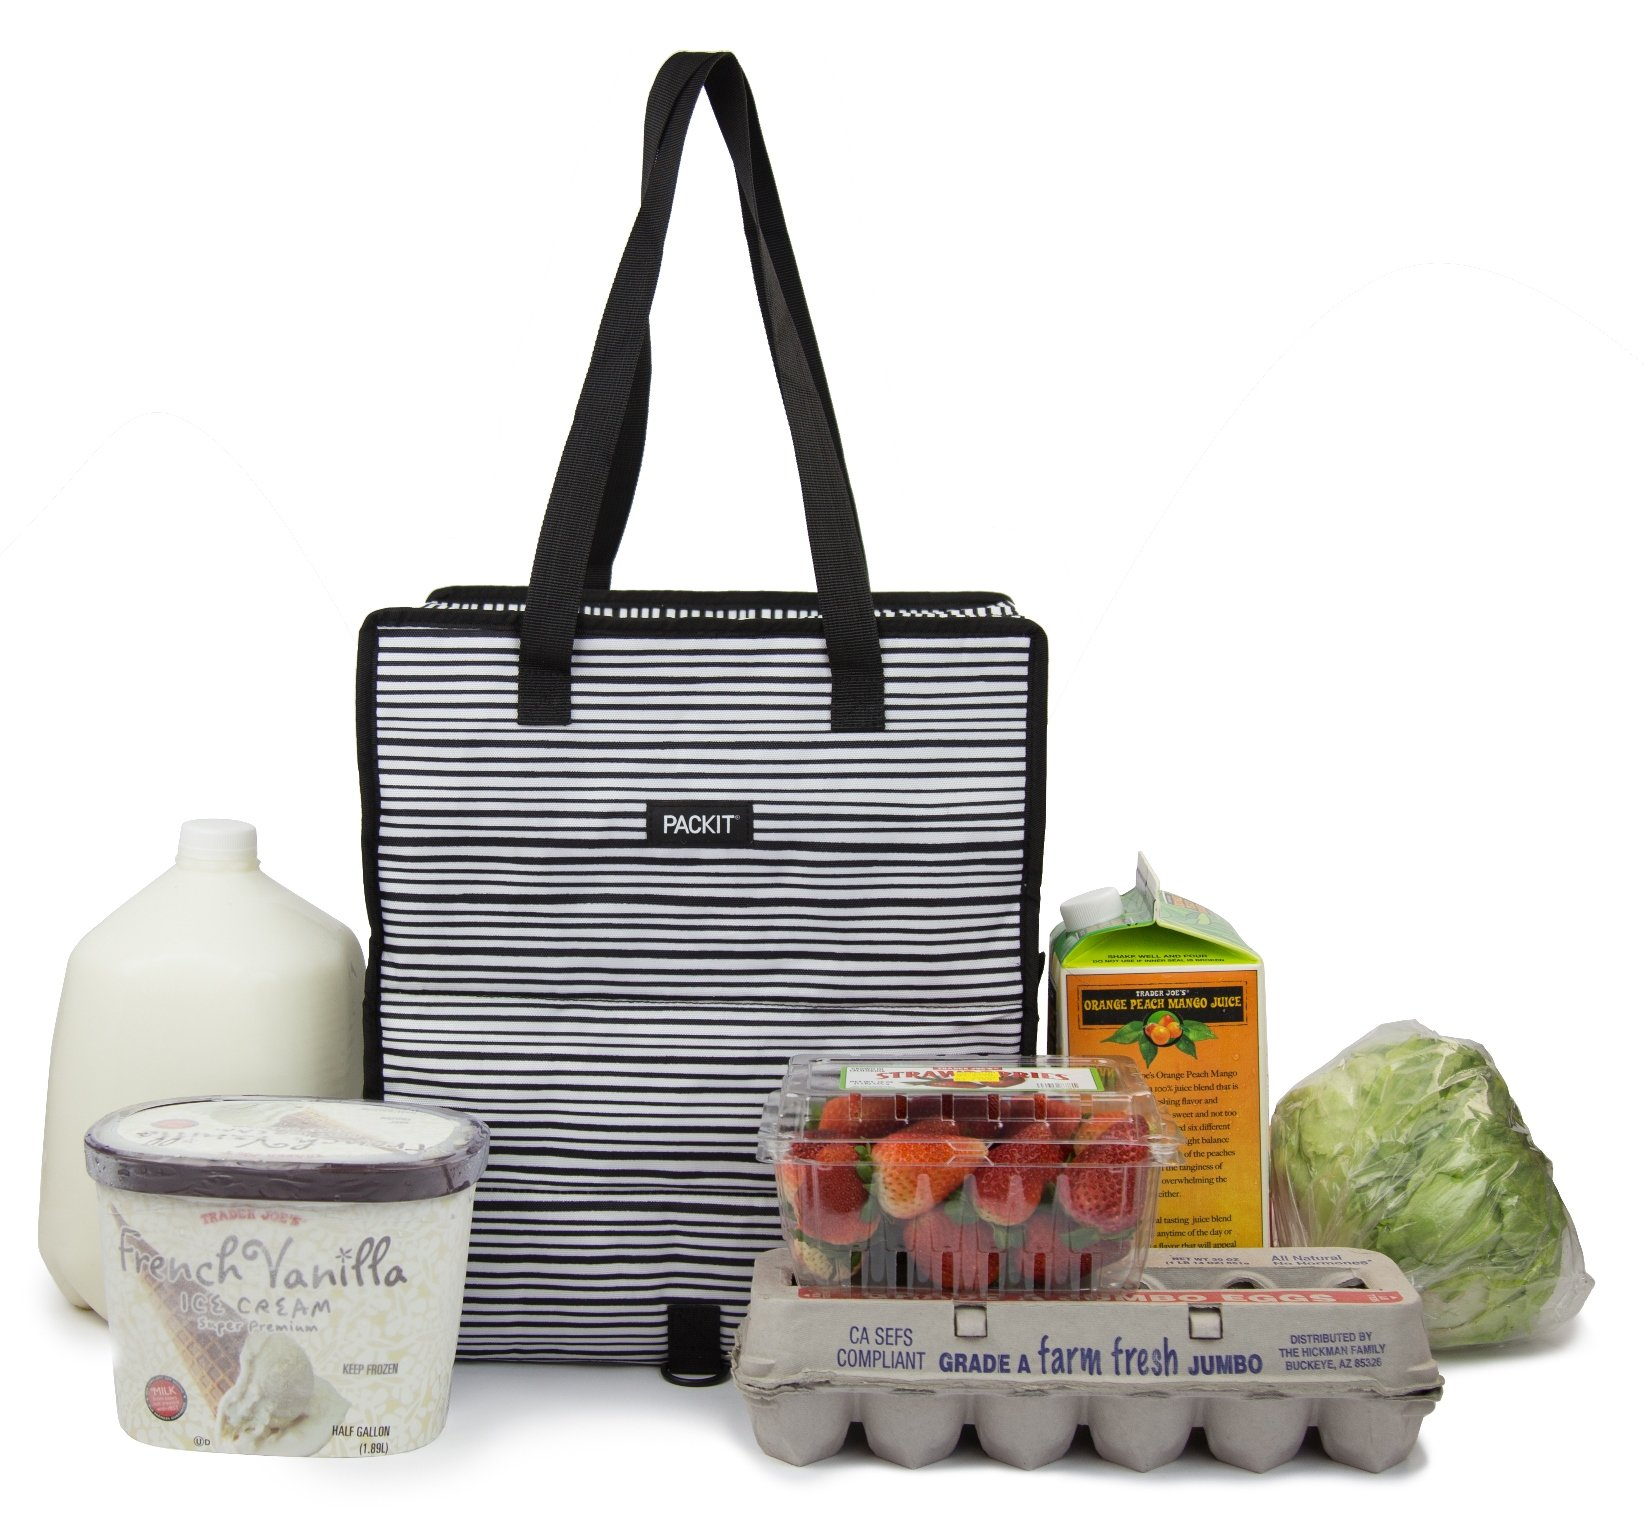 PackIt Freezable Grocery Shopping Bag with Zip Closure, Wobbly Stripes by PackIt (Image #7)